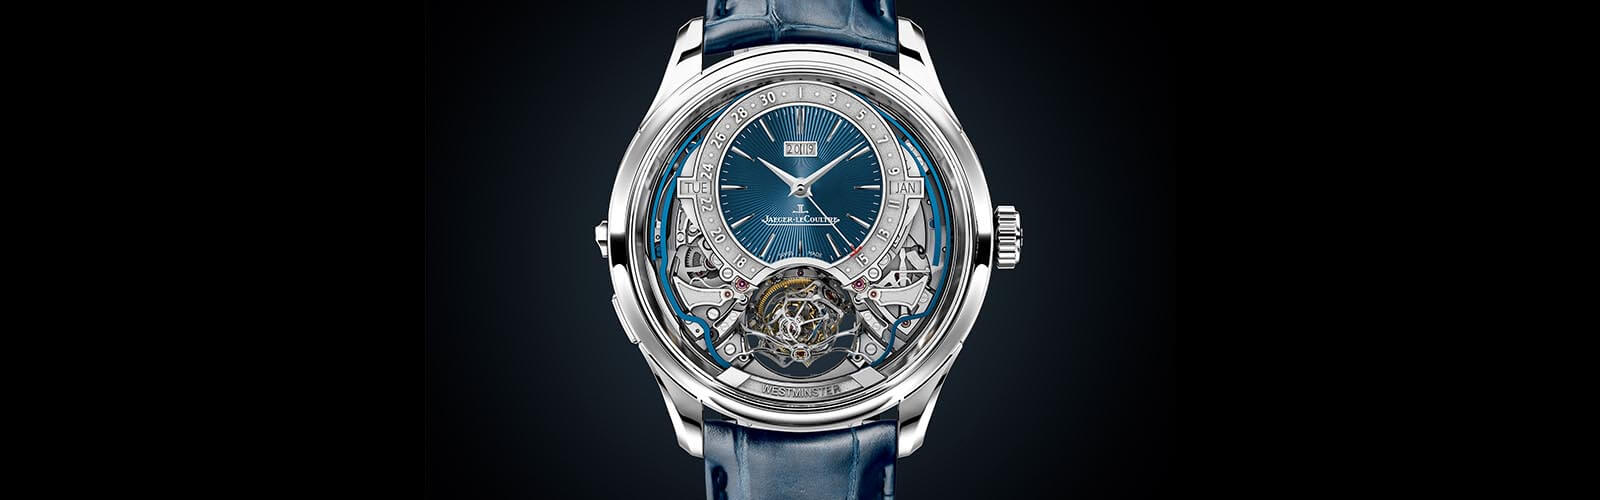 JAEGER LECOULTRE Master-Grande-Tradition-Gyrotourbillon-Westminster-Perpetuel-Header